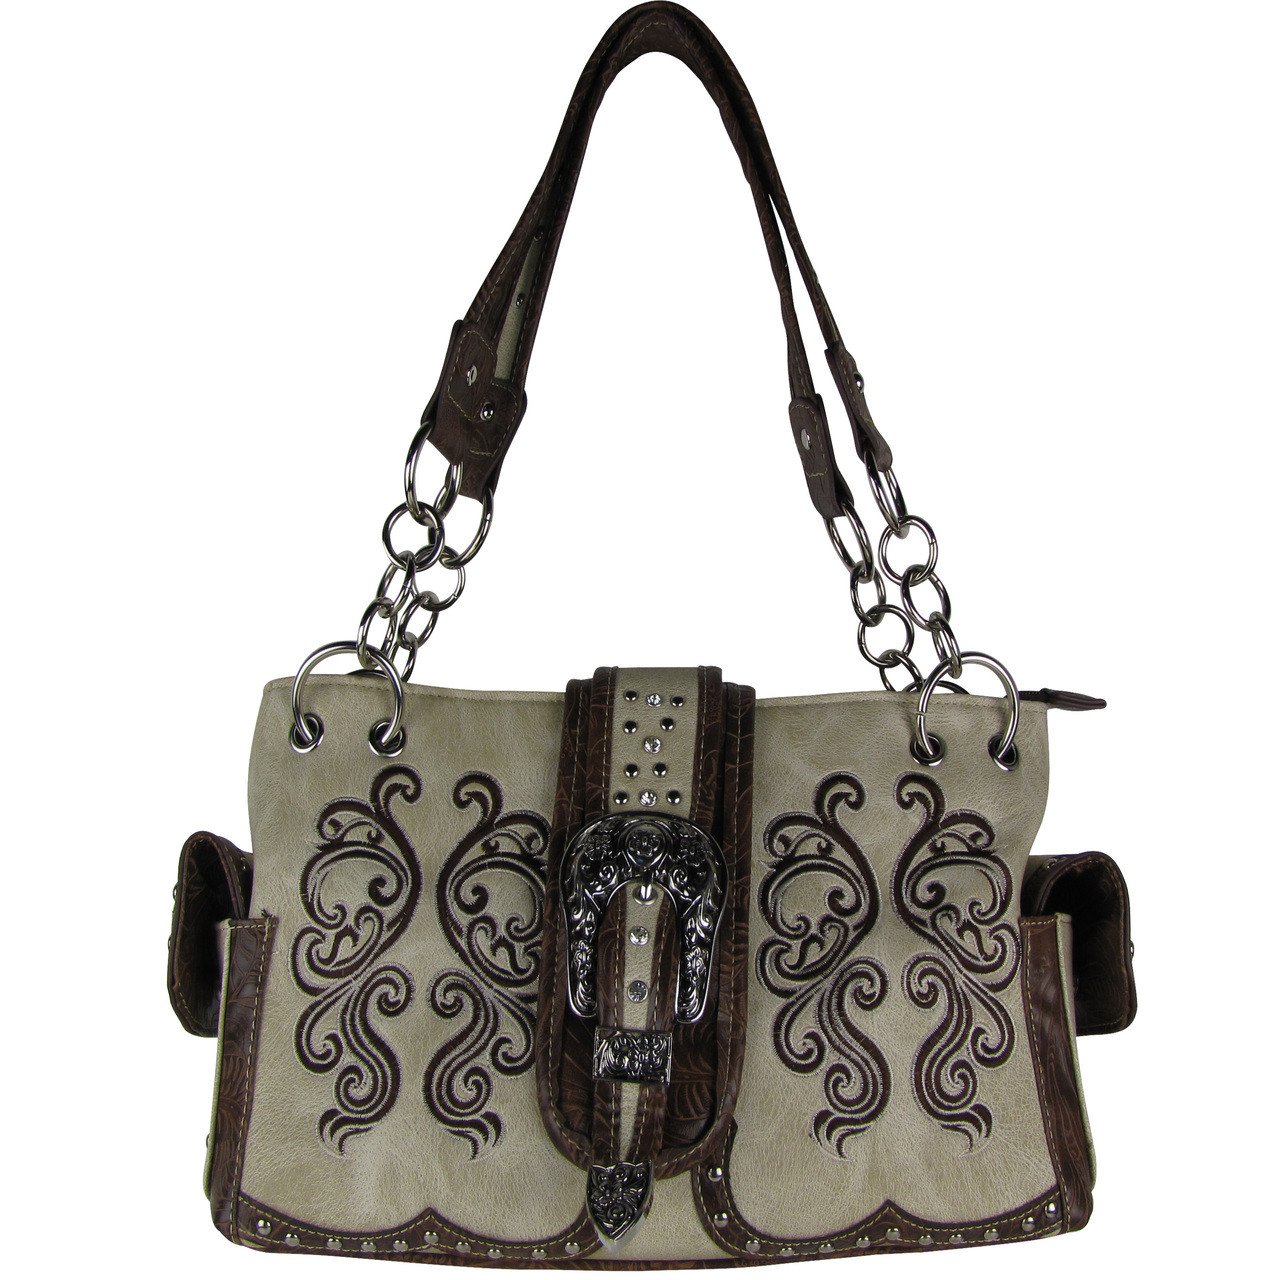 BEIGE WESTERN BUCKLE LOOK SHOULDER HANDBAG HB1-39W62BEI